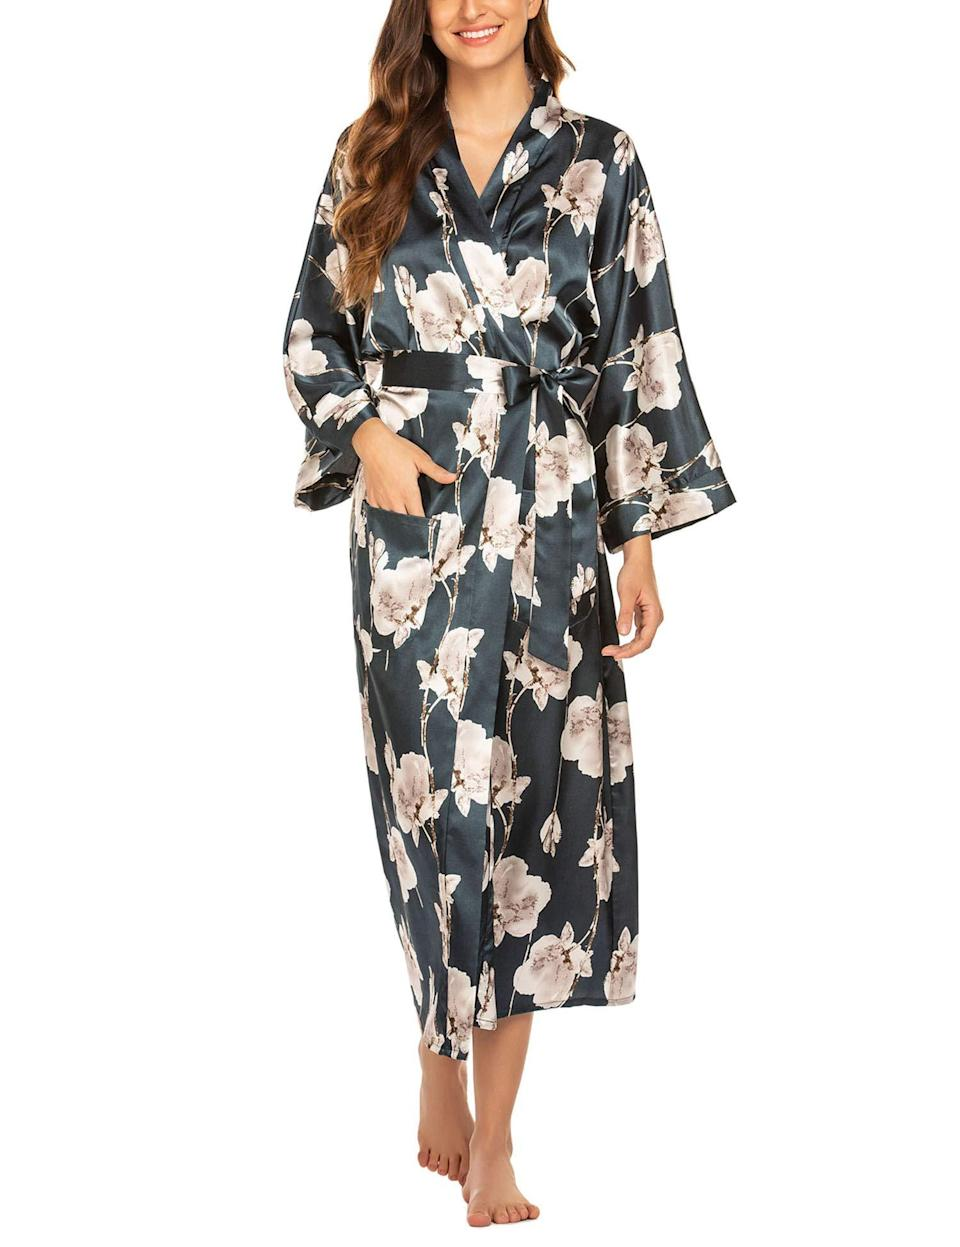 """<br><br><strong>FINEJO</strong> Long Robe With Pockets, $, available at <a href=""""https://amzn.to/2xDESu8"""" rel=""""nofollow noopener"""" target=""""_blank"""" data-ylk=""""slk:Amazon"""" class=""""link rapid-noclick-resp"""">Amazon</a>"""